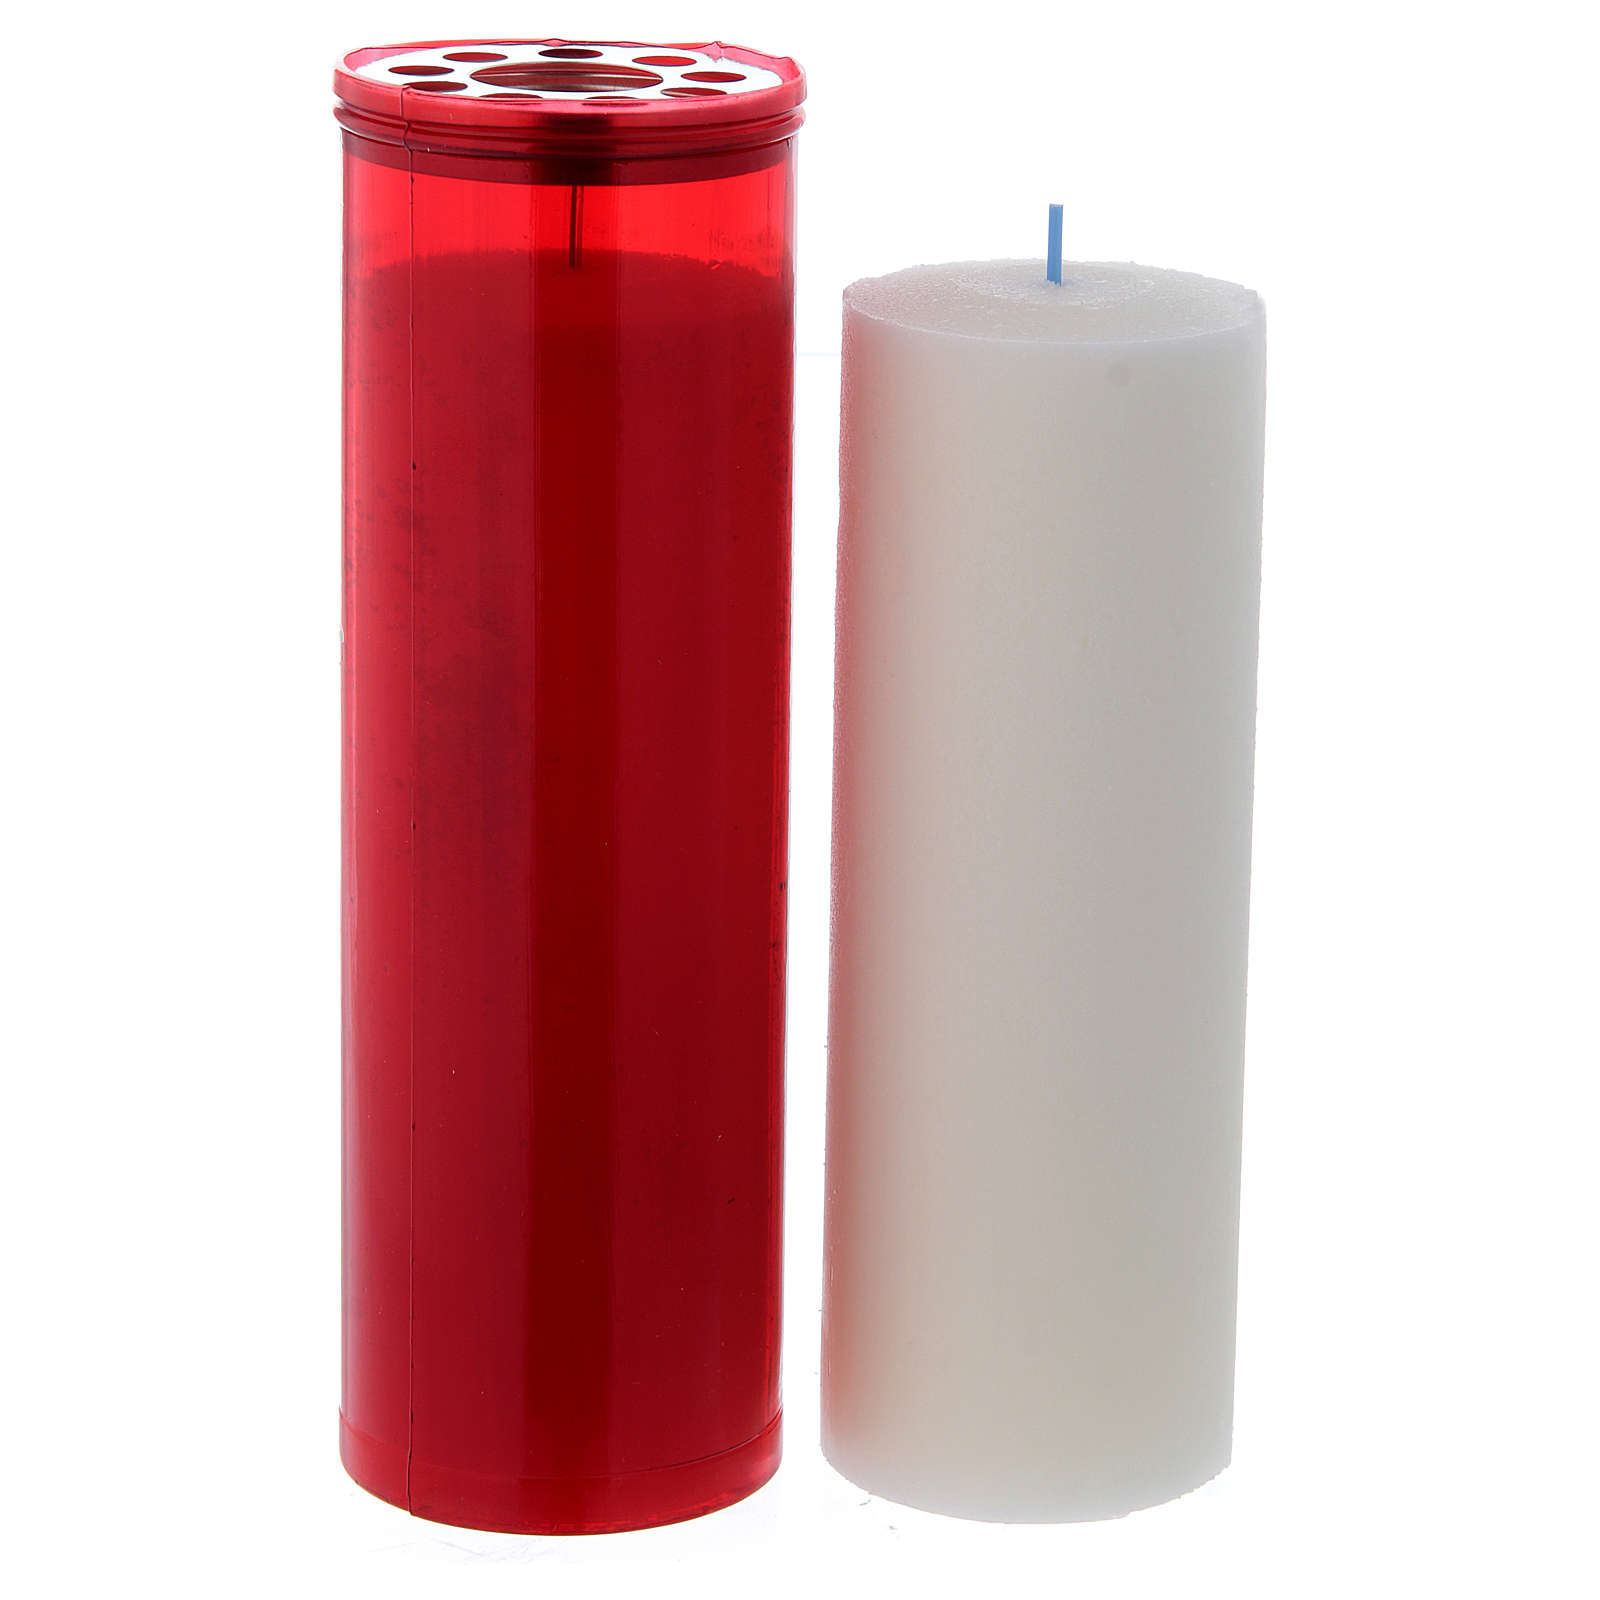 T60 red votive candle with white wax 3